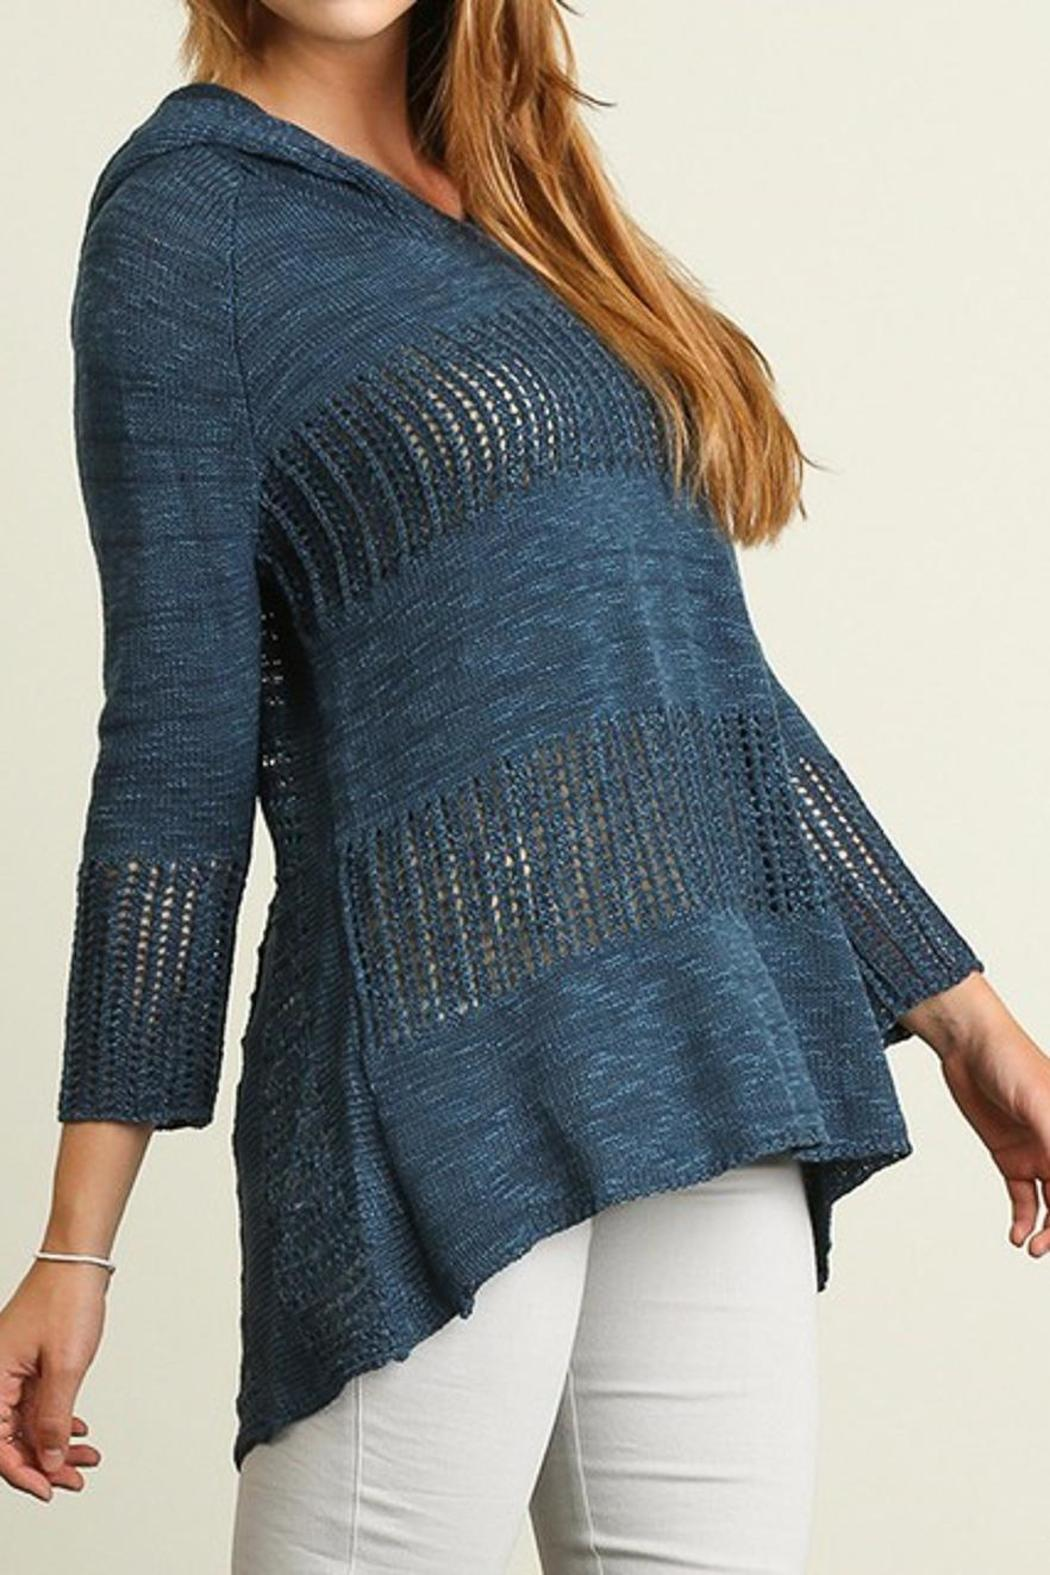 People Outfitter Anna Sweater - Side Cropped Image